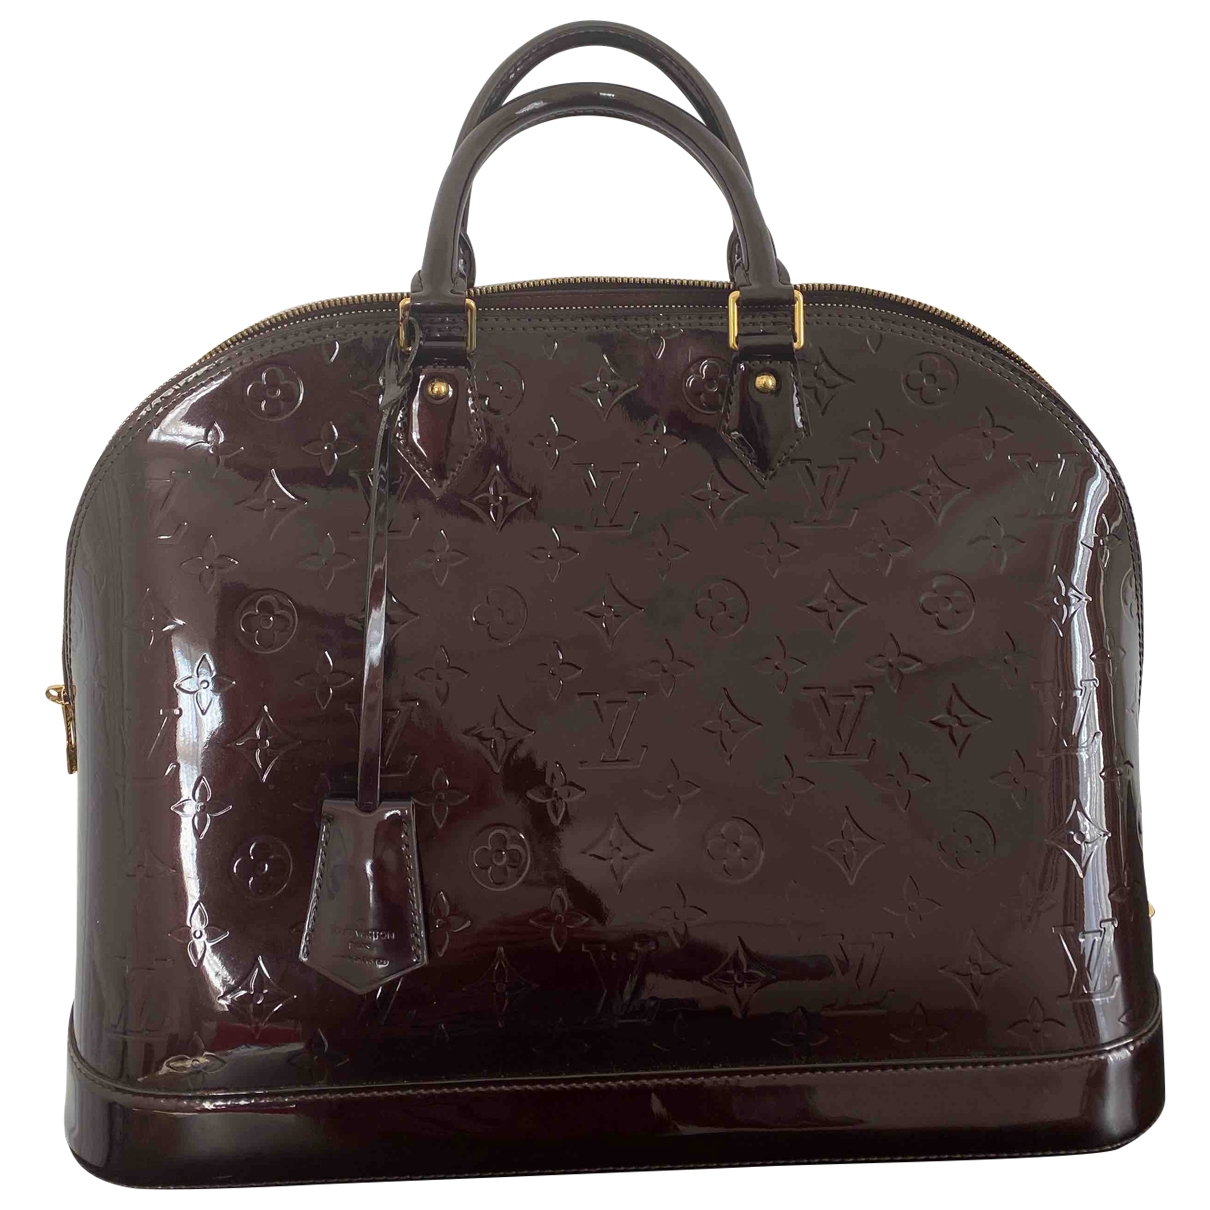 Louis Vuitton Alma BB Burgundy Patent leather handbag for Women \N